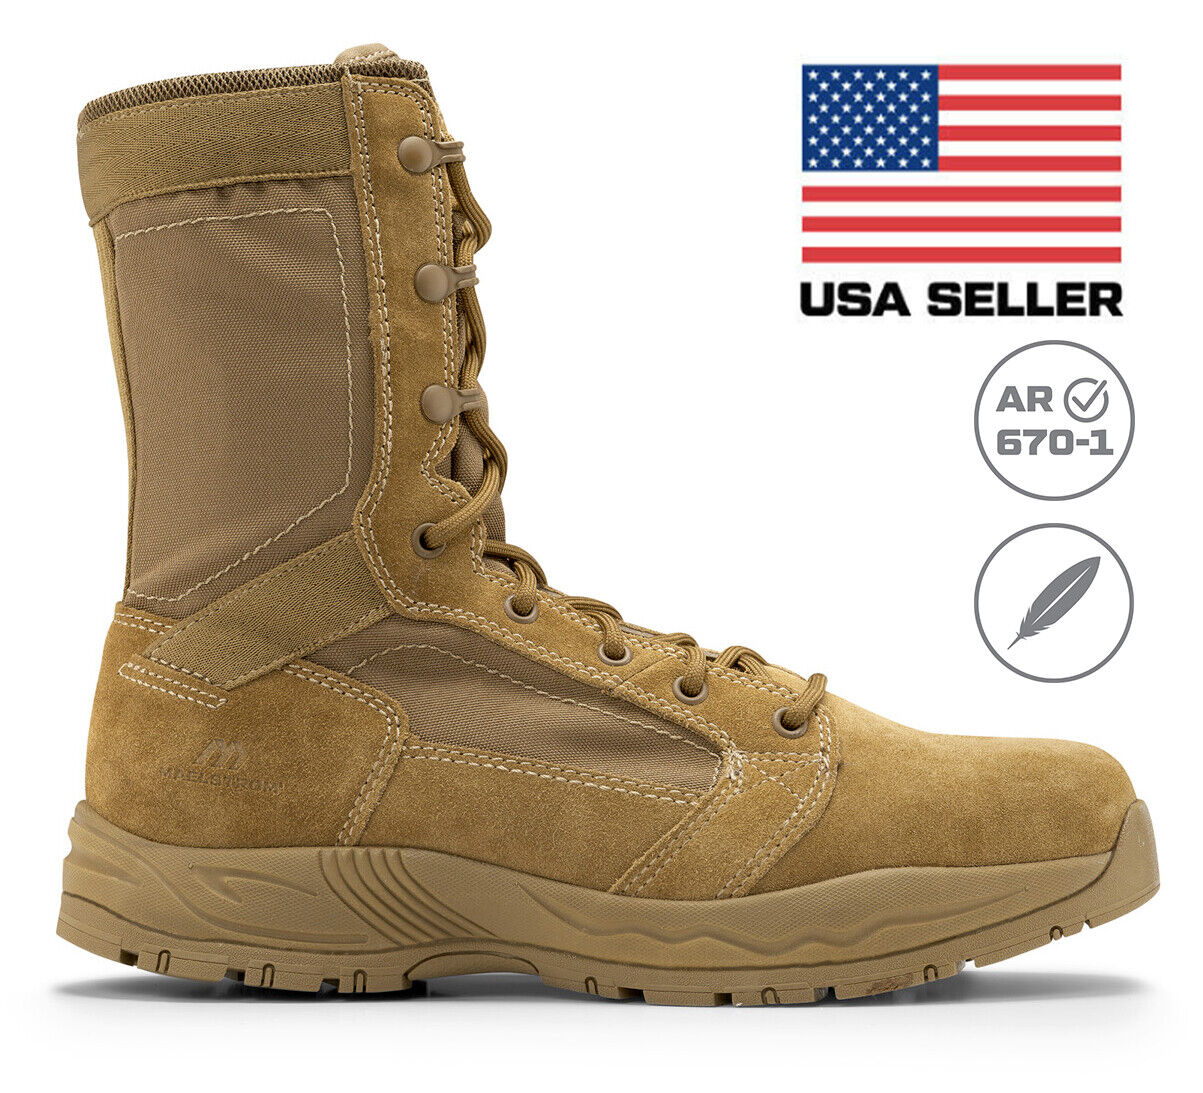 Maelstrom Mil Lite Men's 9'' Coyote Brown Military Boot AR 670-1 Compliant